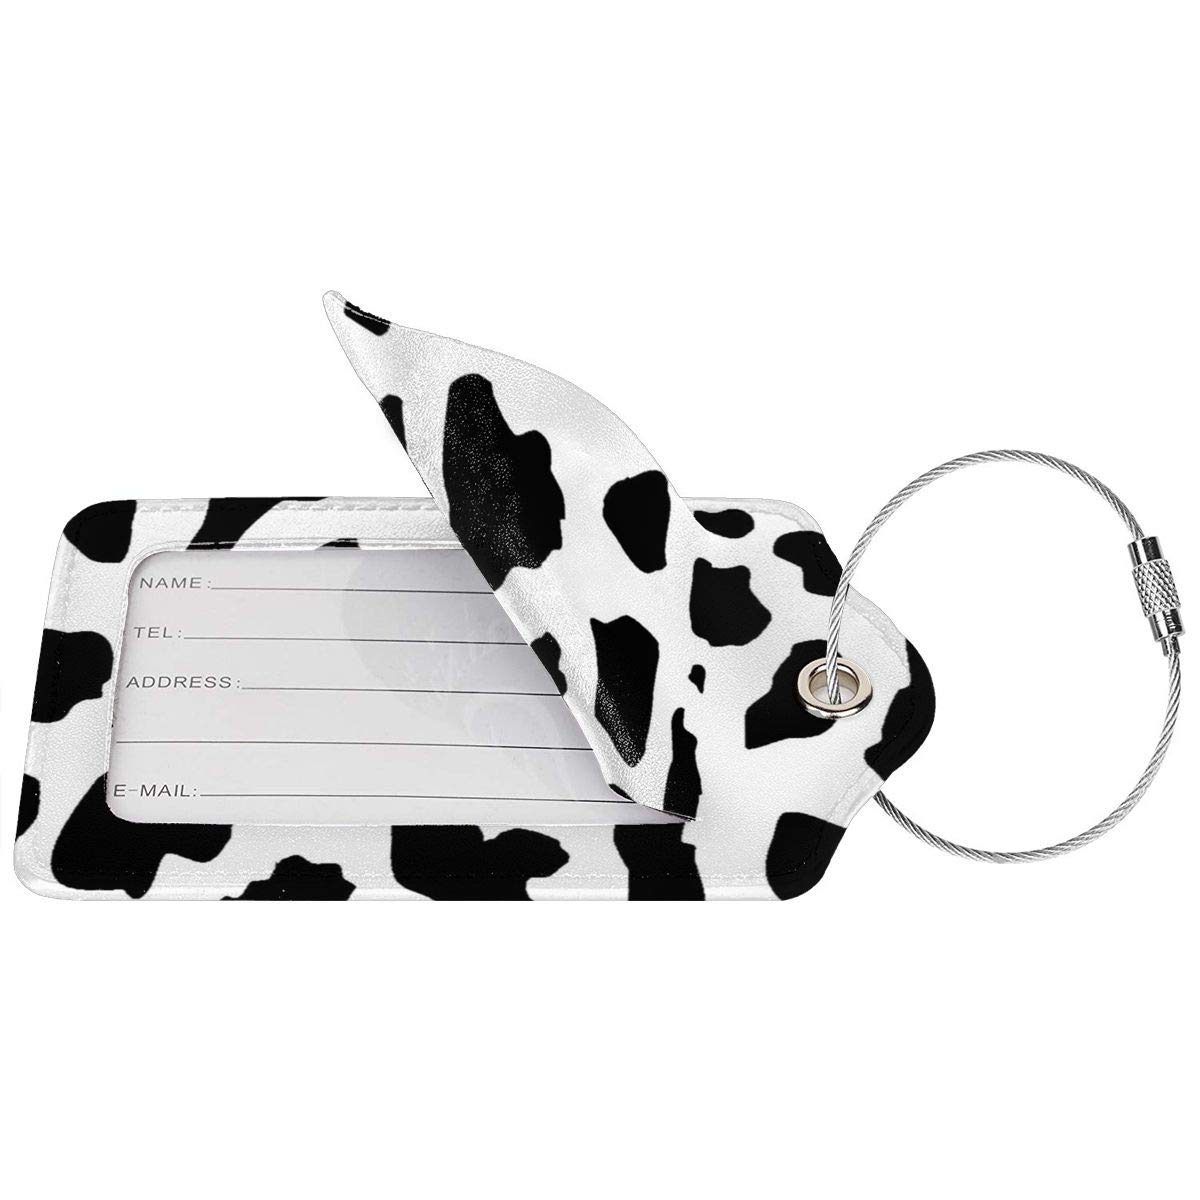 Black And White Cow Pattern Leather Luggage Tags Personalized Travel Accessories With Adjustable Strap